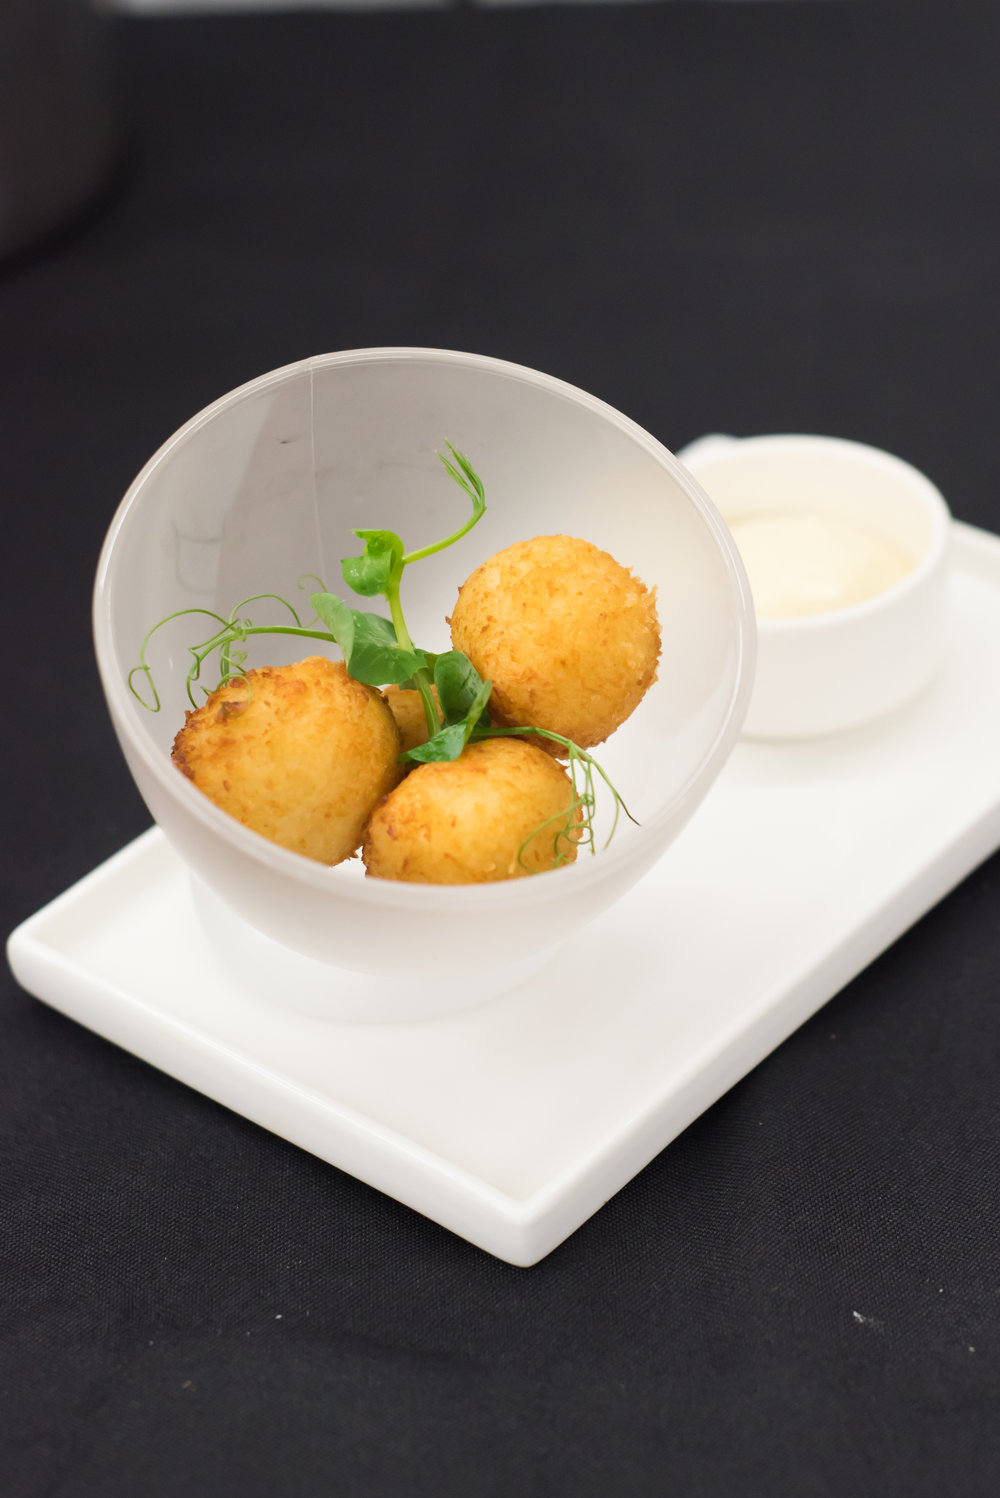 CROQUETAS - a play on croquettes with cod & aioli